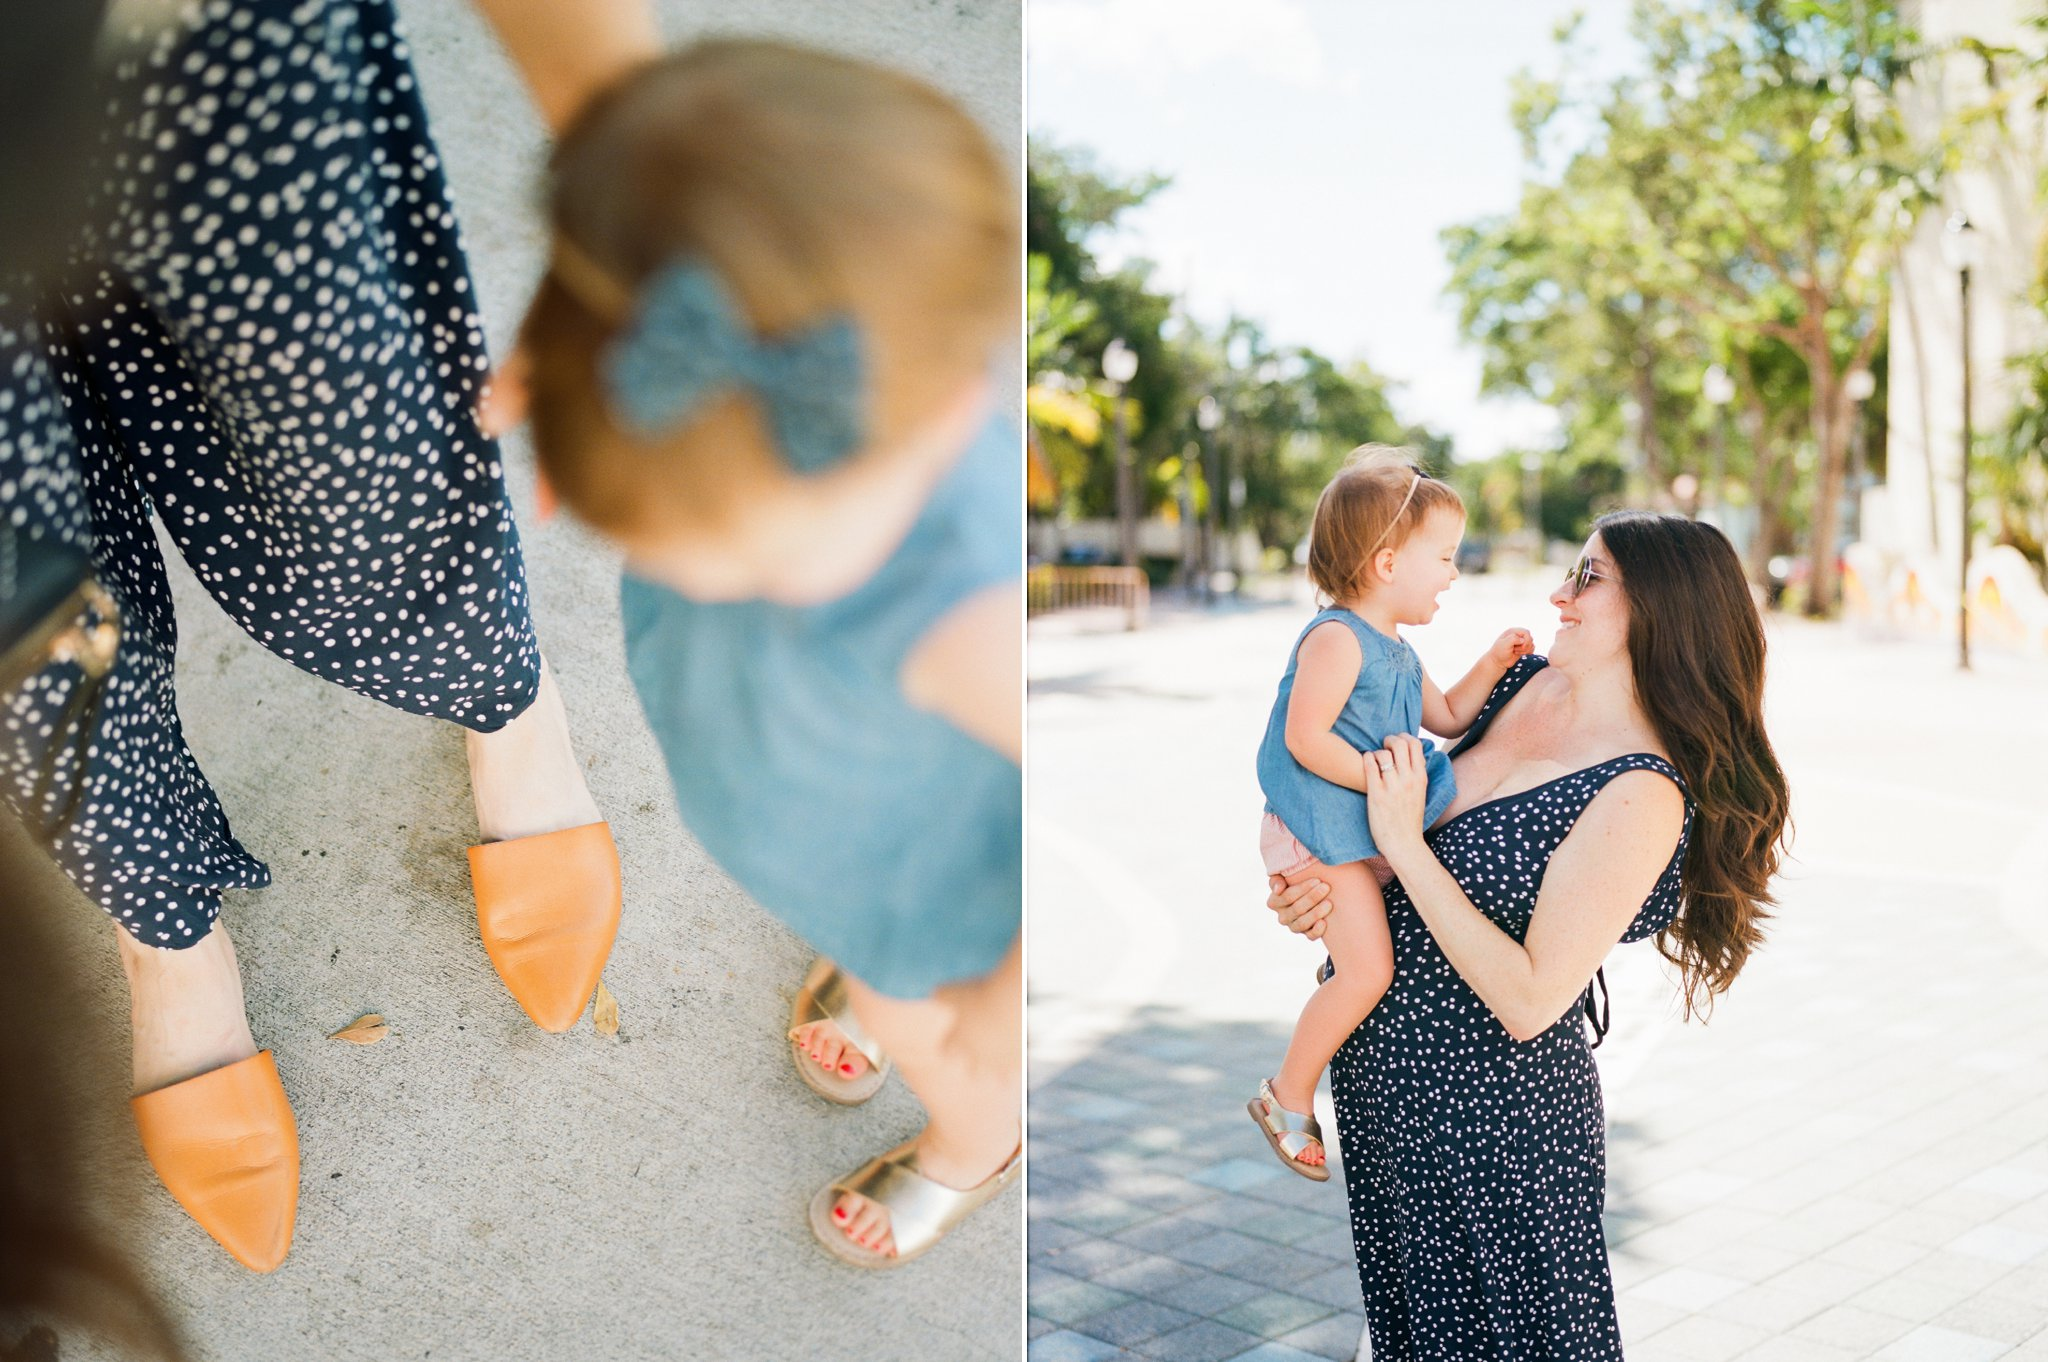 coral gables maternity photographer fine art maternity session shannon griffin photography_0020.jpg